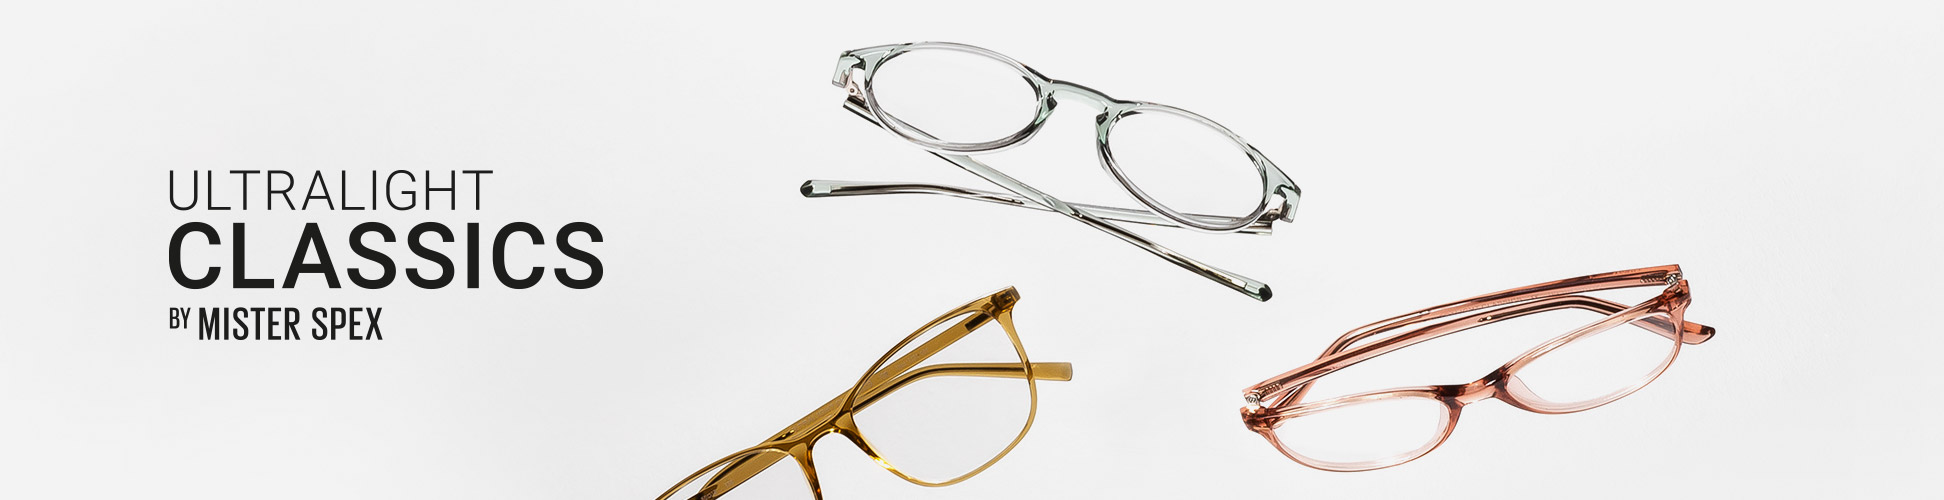 d876ad9bc4b Ultralight Classics Glasses at Mister Spex UK